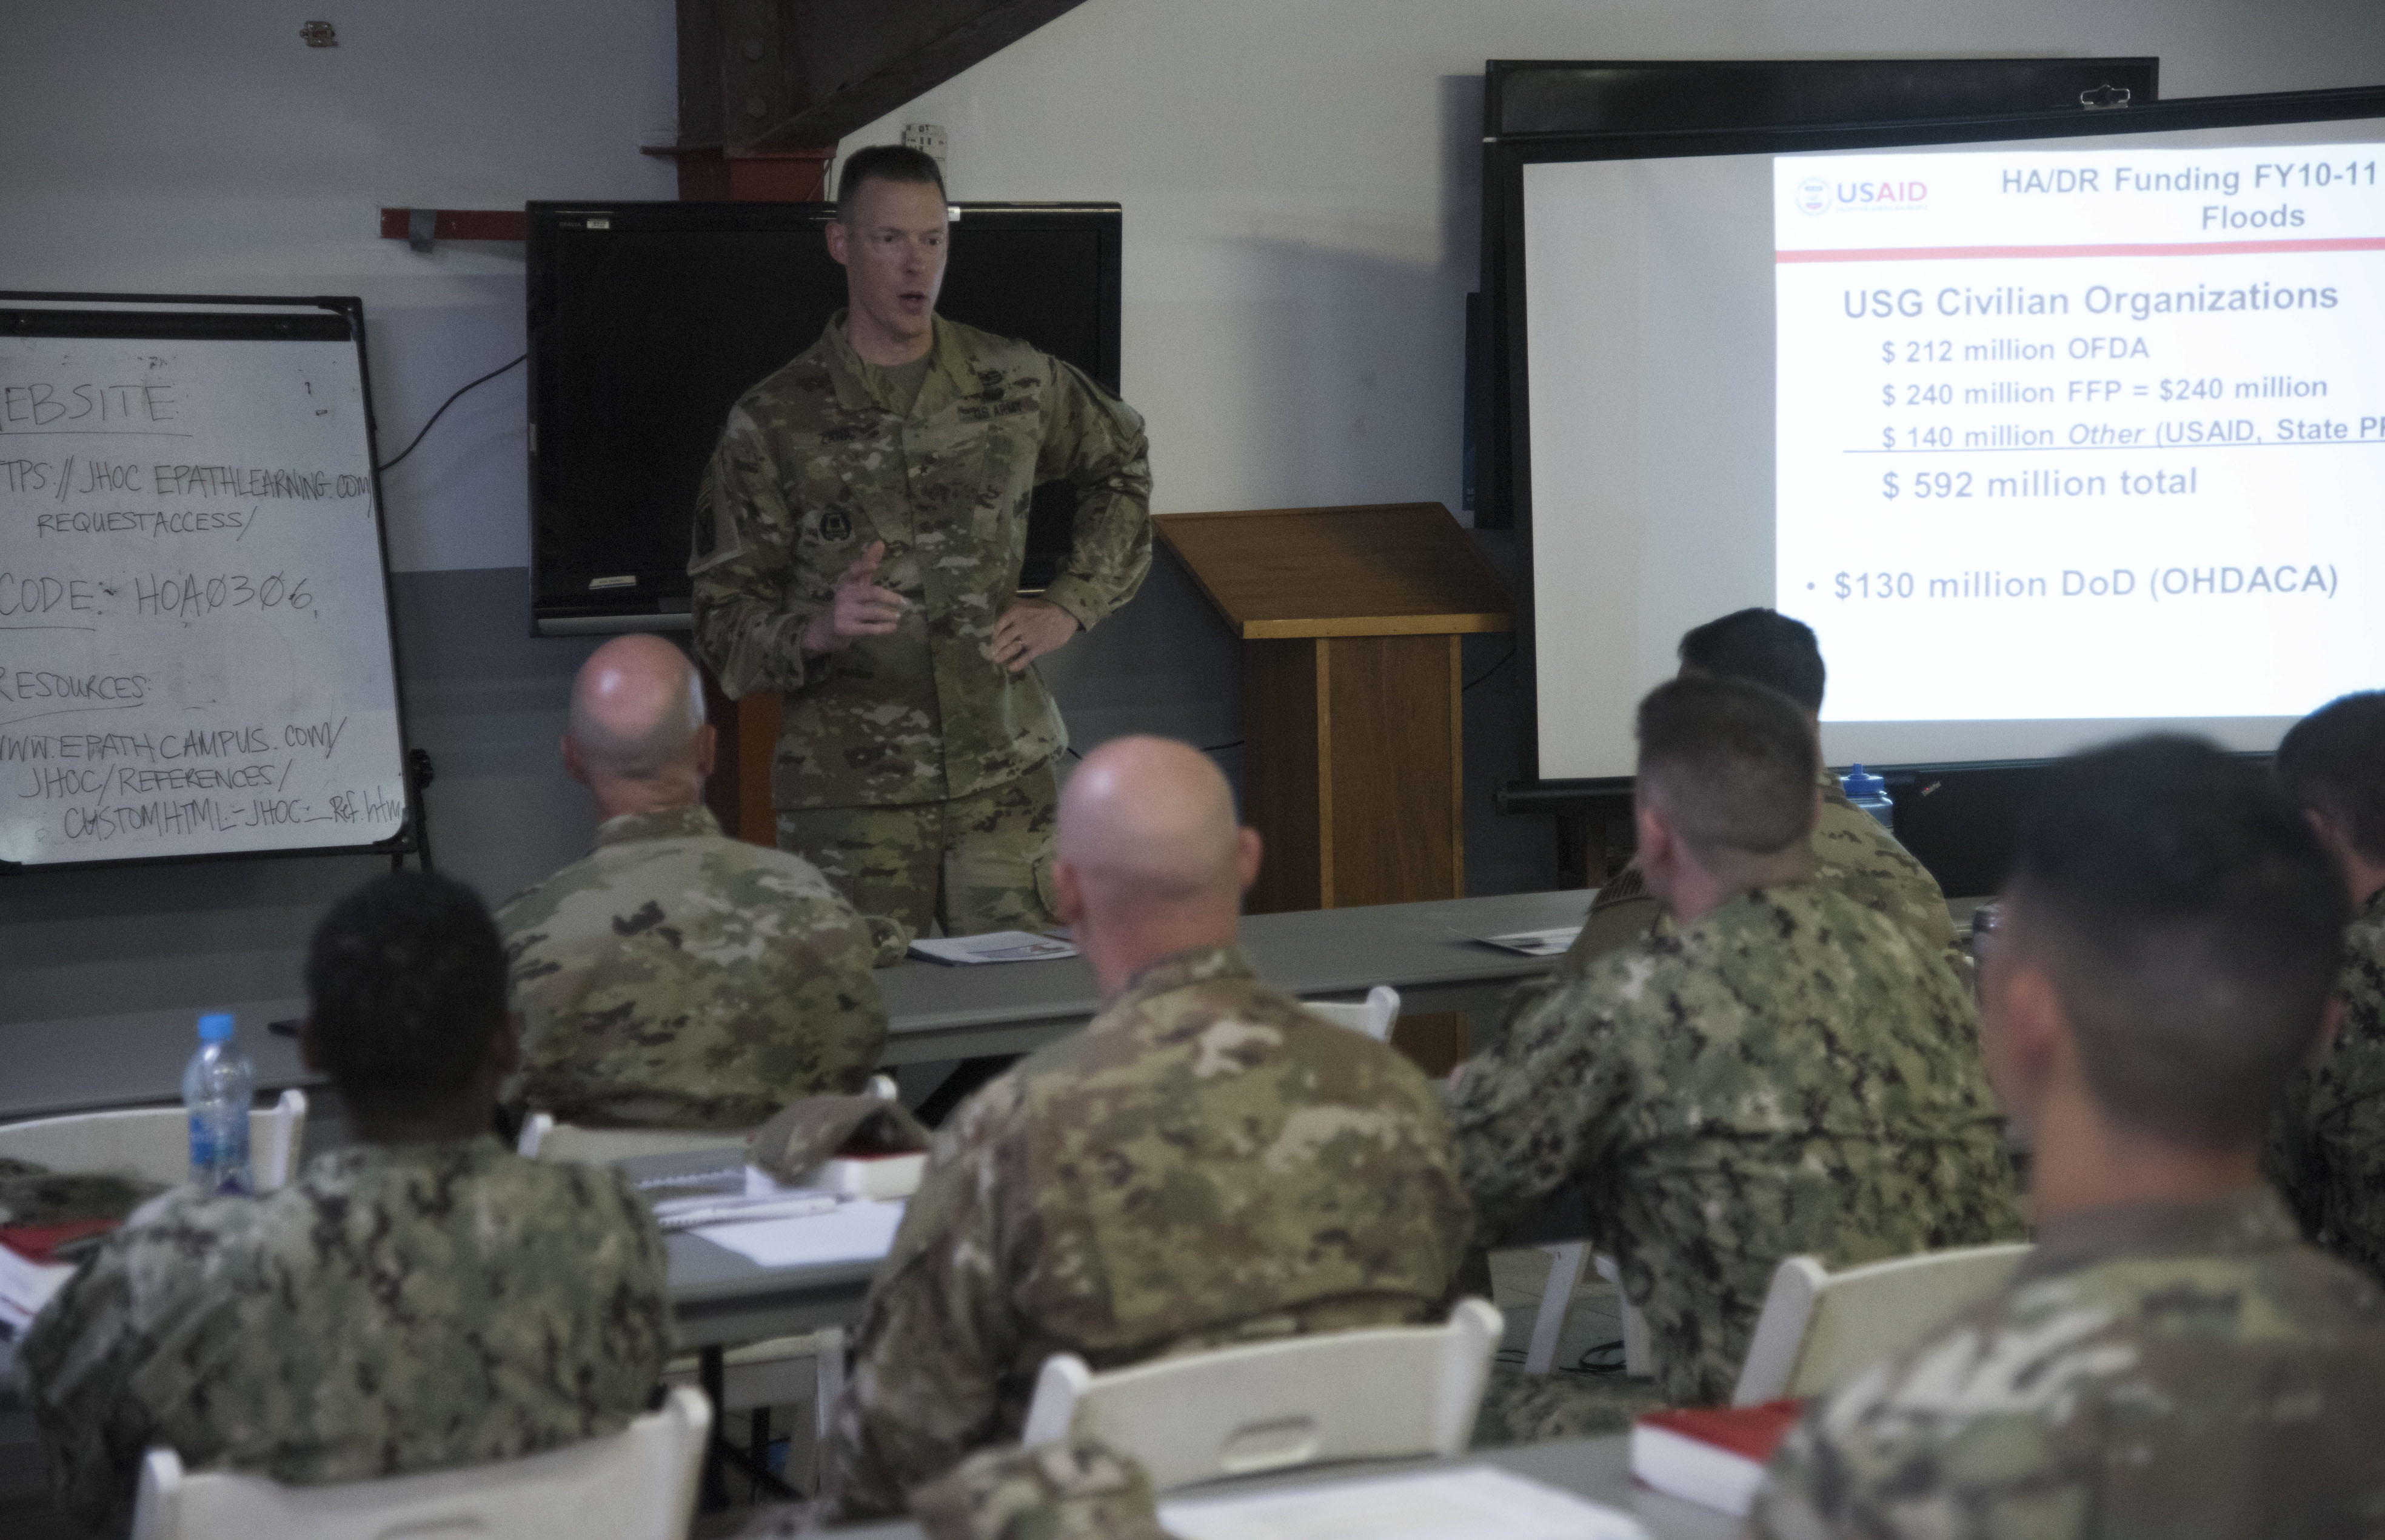 U.S. Army Brig. Gen. William L. Zana, Deputy Commanding General of Combined Joint Task Force - Horn of Africa, speaks to service members during a U.S. Agency for International Development's Joint Humanitarian Operations Course at Camp Lemonnier, Djibouti, March 7, 2018. Members attended the two-day course, which highlighted international disaster response, best practices and the U.S. military's role when supporting foreign humanitarian assistance and disaster relief operations. (U.S. Air National Guard photo by Staff Sgt. Allyson L. Manners)